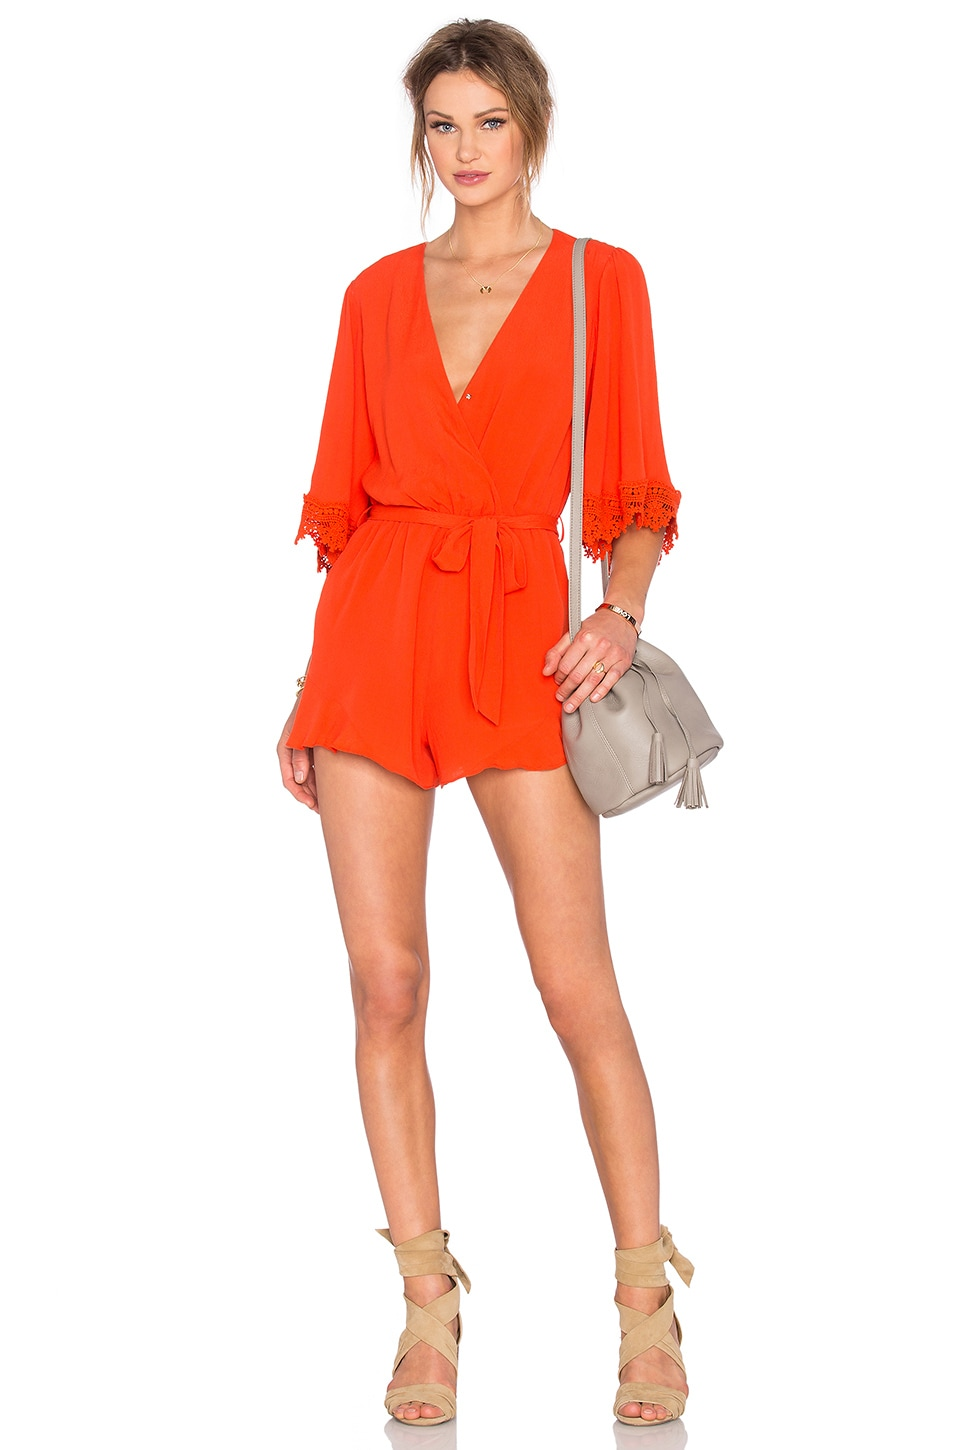 Lovers + Friends Reese Romper in Coral Reef